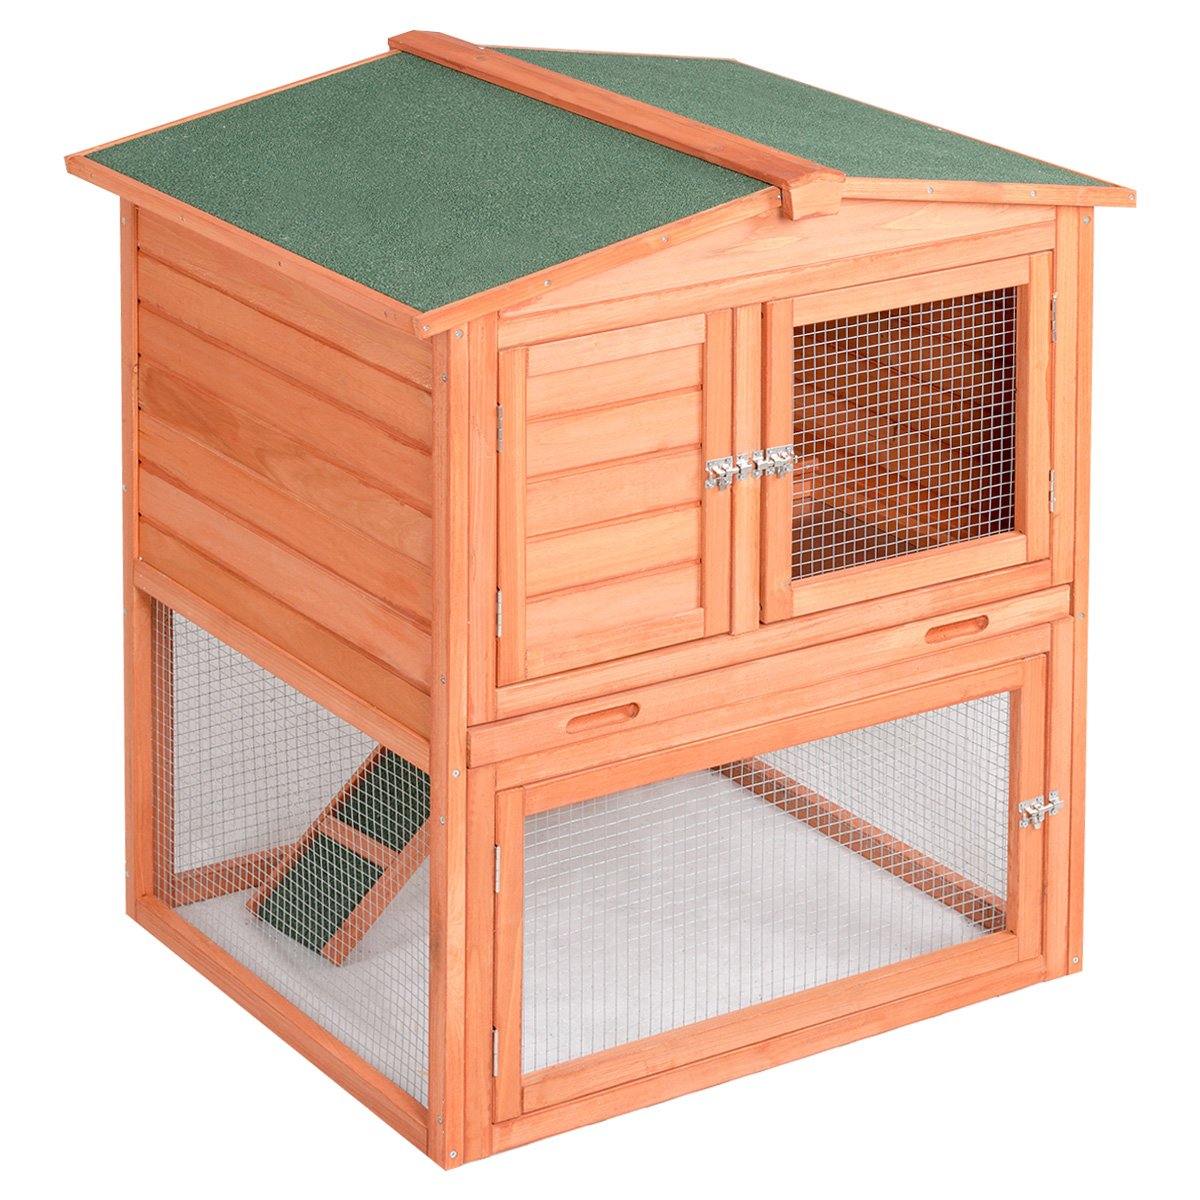 Tangkula Chicken Coop Wooden Garden Backyard Bunny Small Animal Hen Cage Rabbit Hutch by Tangkula